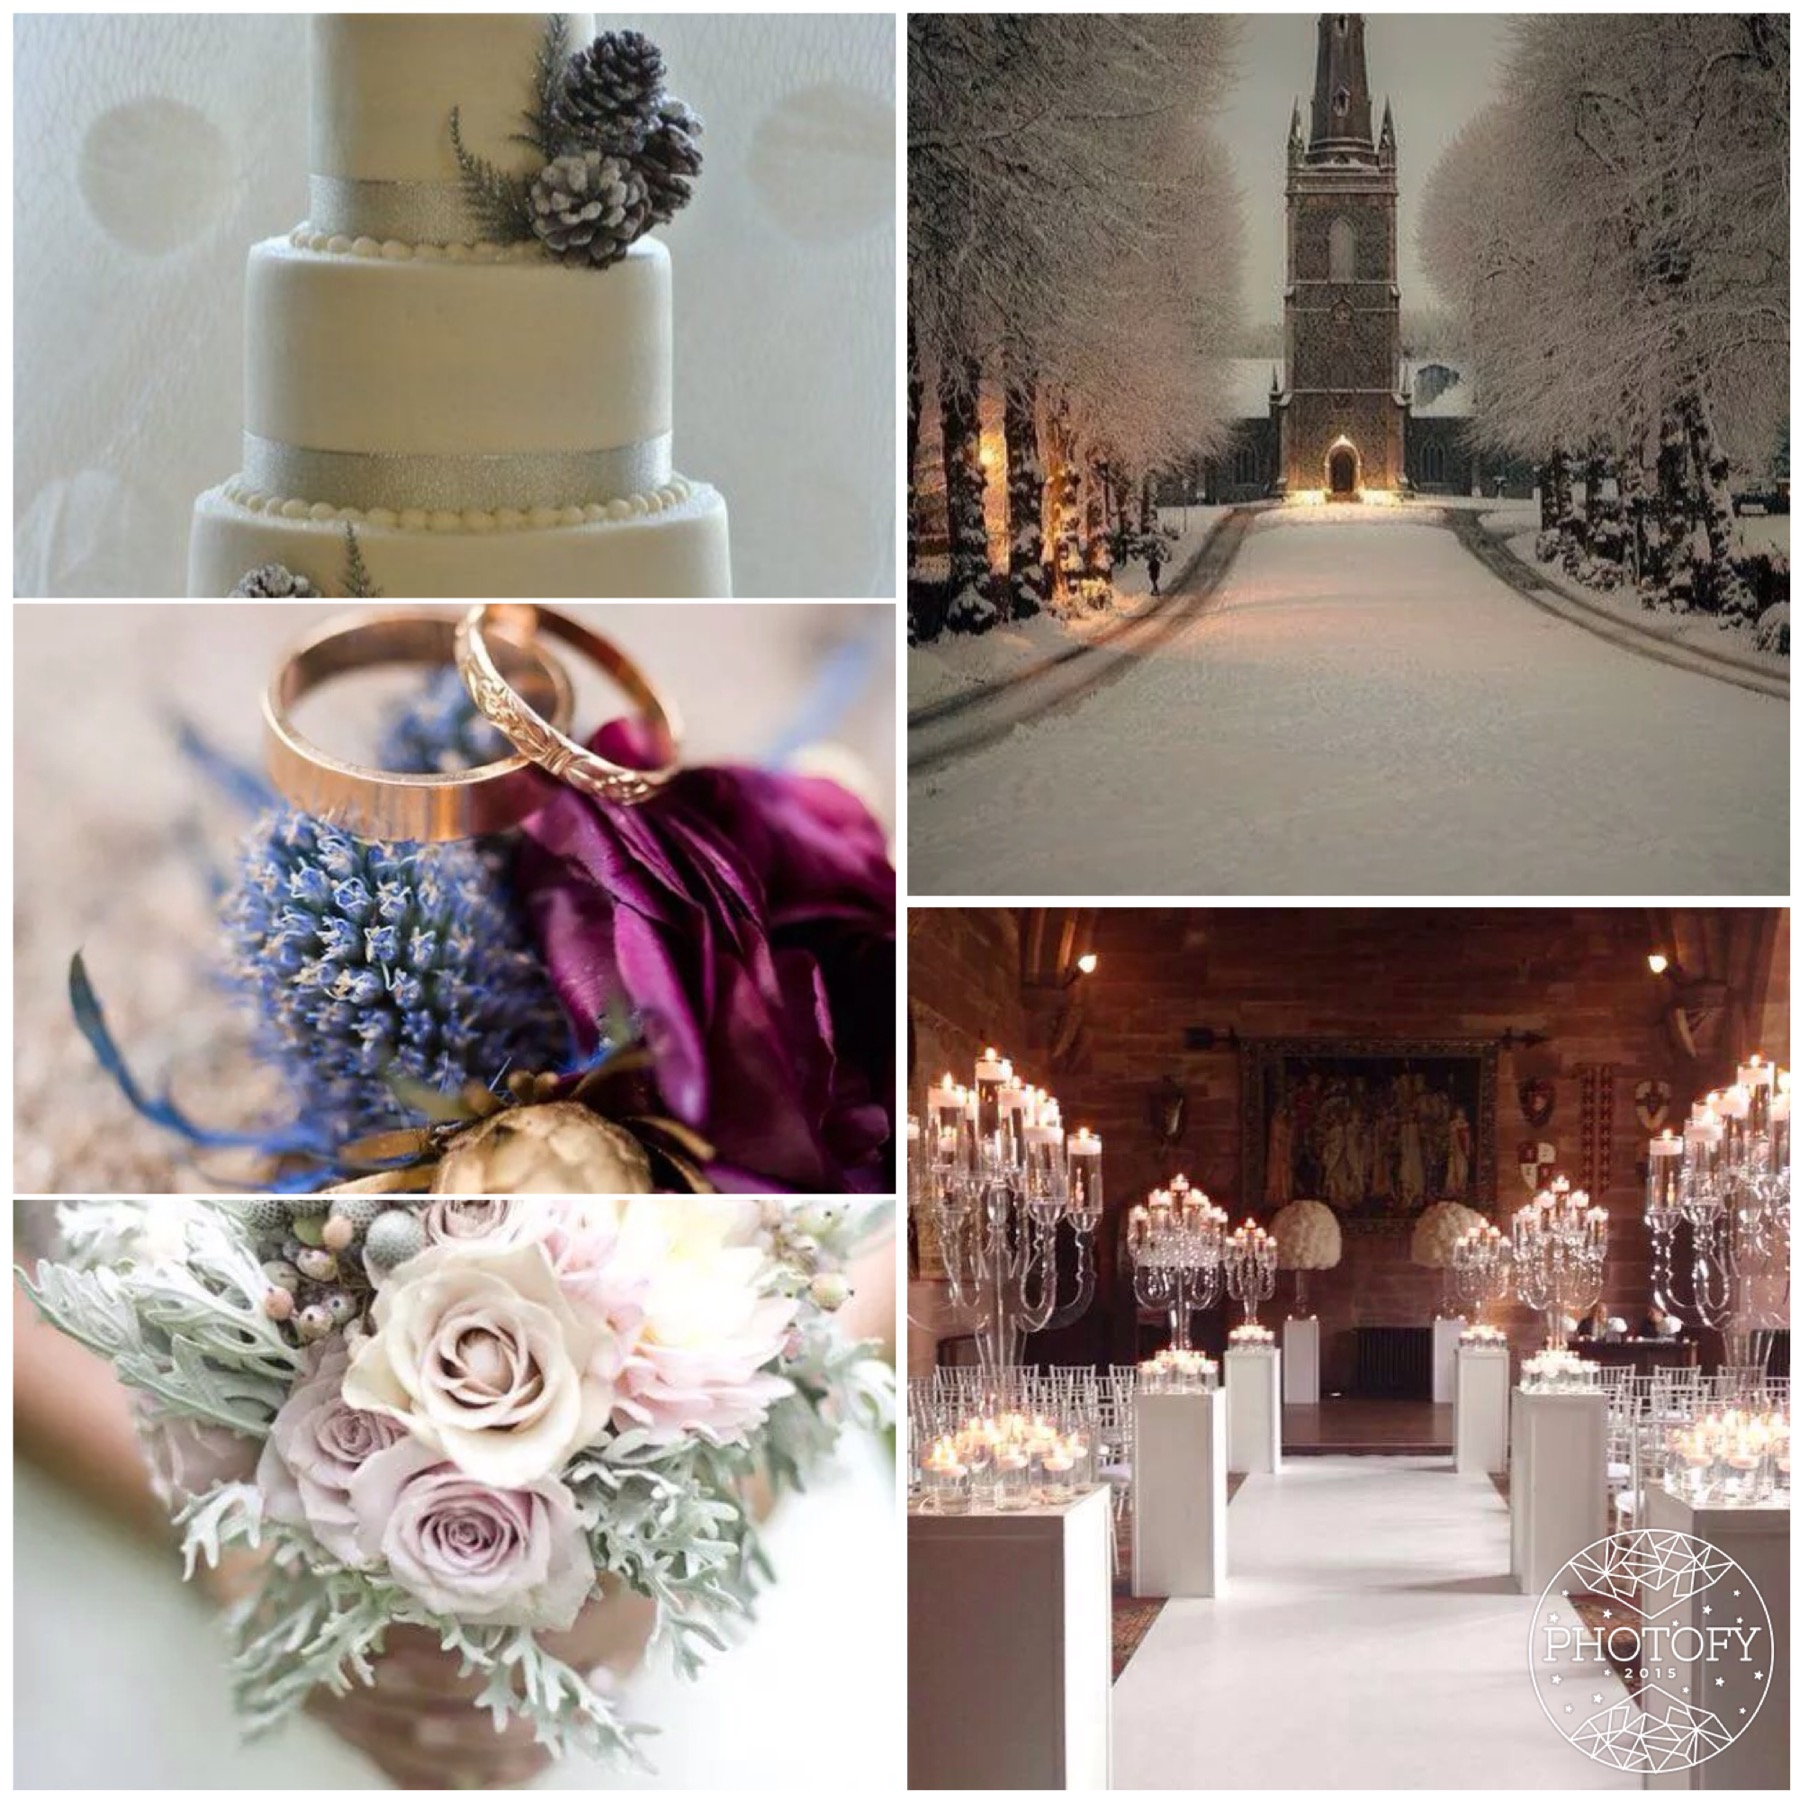 pinterest board, image credit - strictly weddings, winter wedding moodboard, winter wedding pinterest board